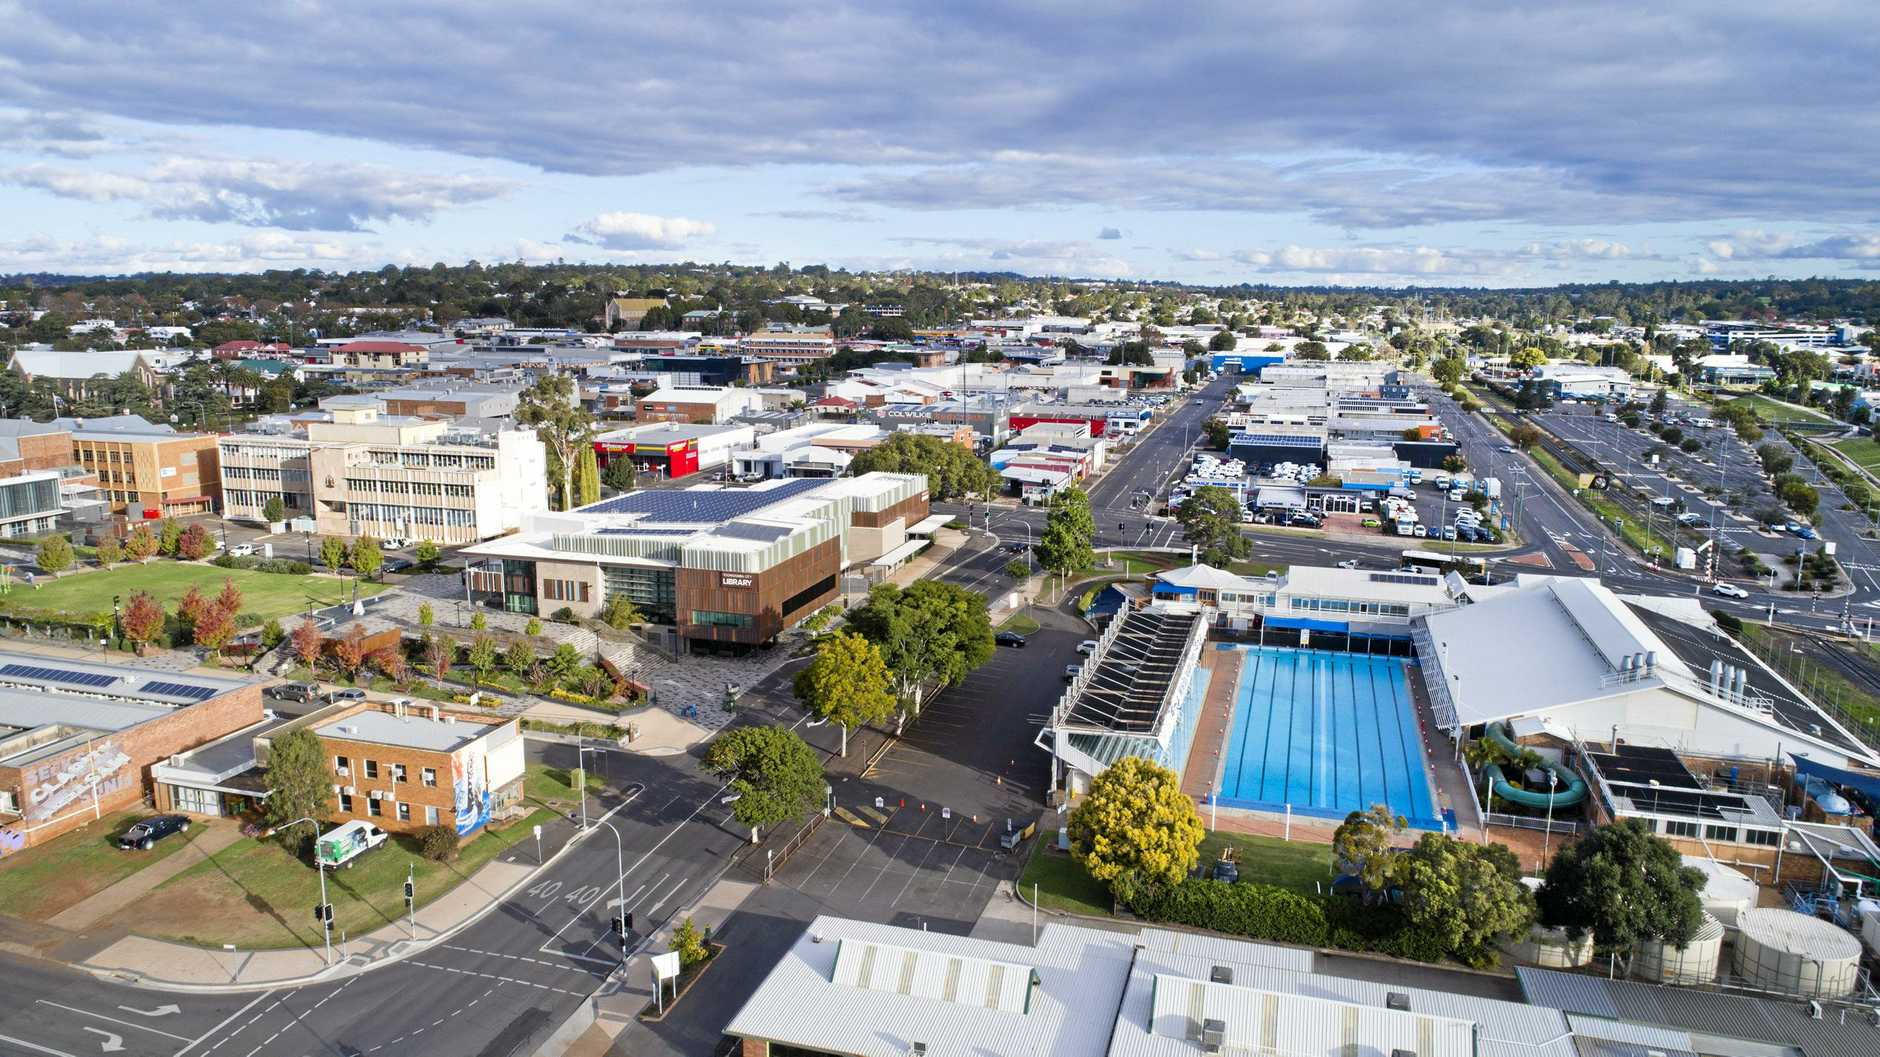 View due south from Toowoomba City Bowls Club. Drone pictures of Toowoomba CBD. Sunday, 19th May, 2019.